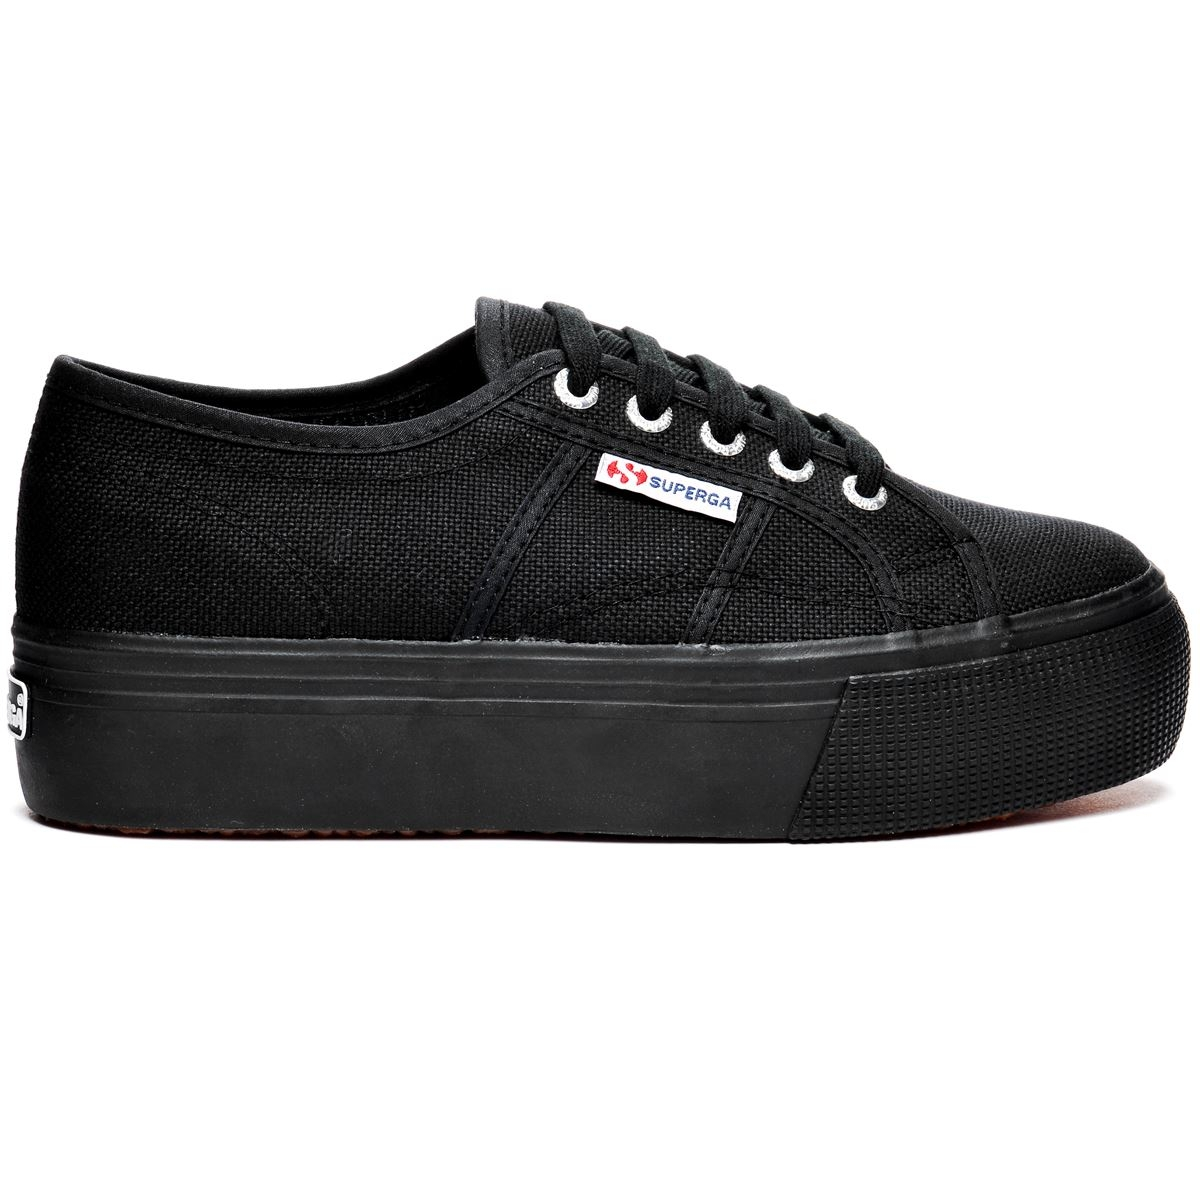 SUPERGA 2790 zeppa 4cm Scarpe DONNA tela ACOTW up and down Nero Prv/Est 996upmad